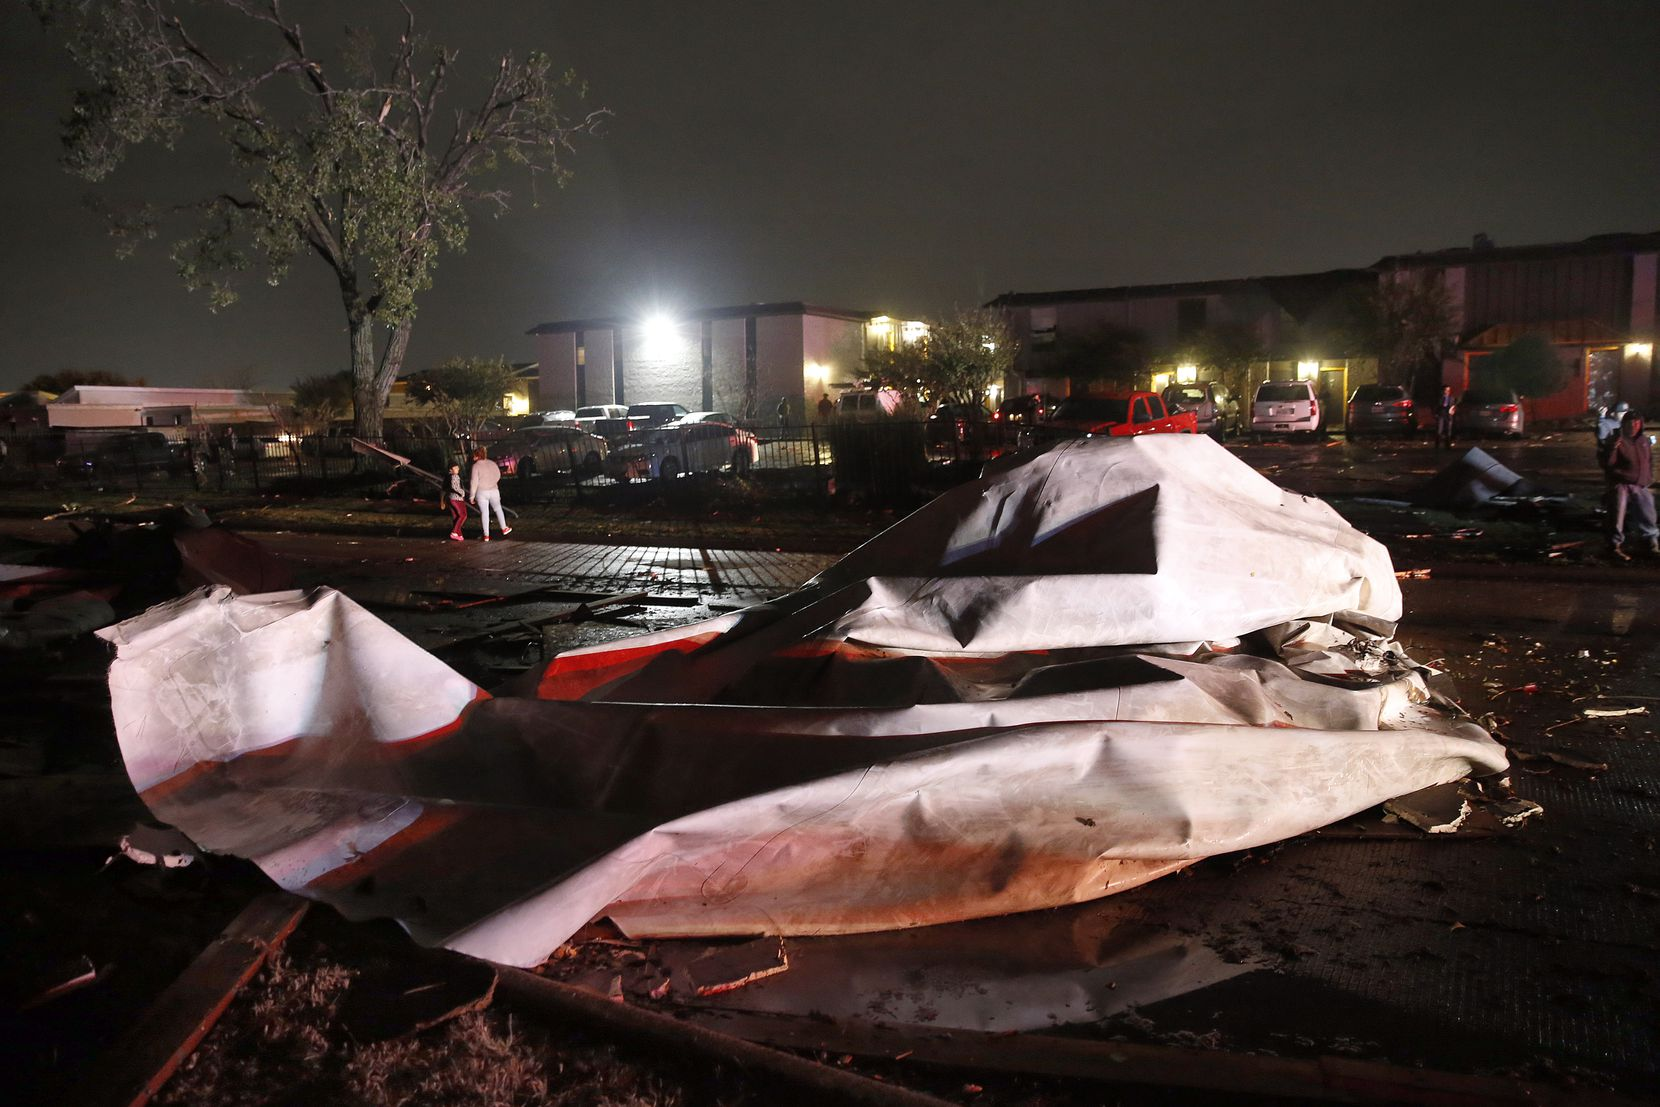 Roofs from The Mirage Apartments complex were torn off and landed on Pioneer Parkway in Arlington following a tornado-warned storm, Tuesday night, November 24, 2020. Air conditioner units and other structural debris were scattered across the property.